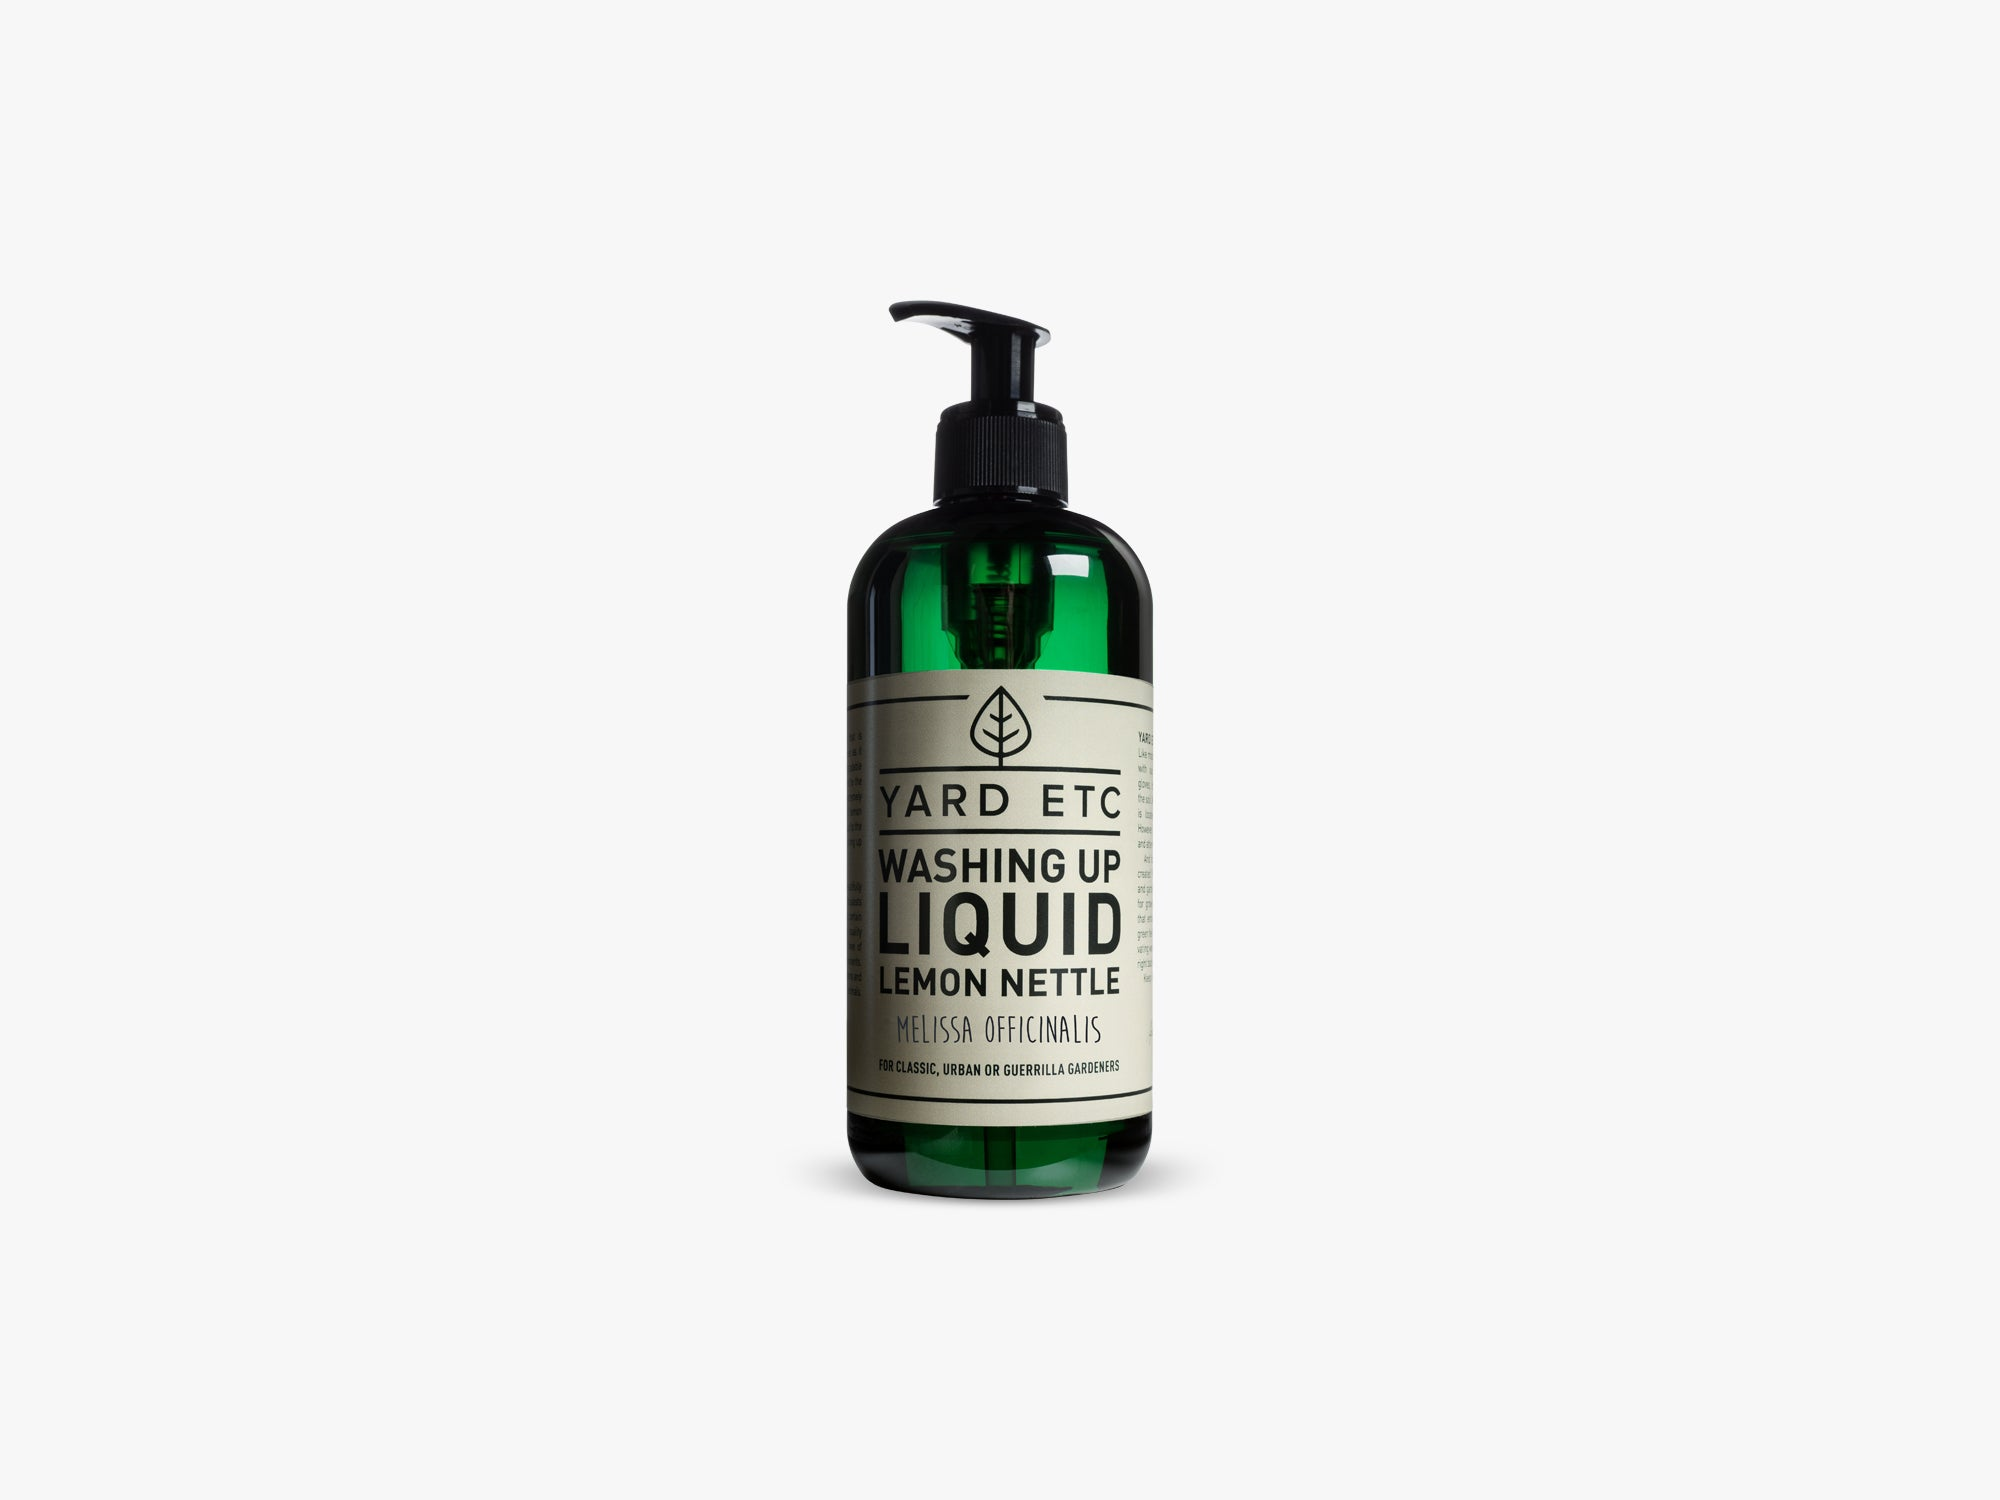 Dish soap - 450ml, Lemon nettle fra Yard Etc